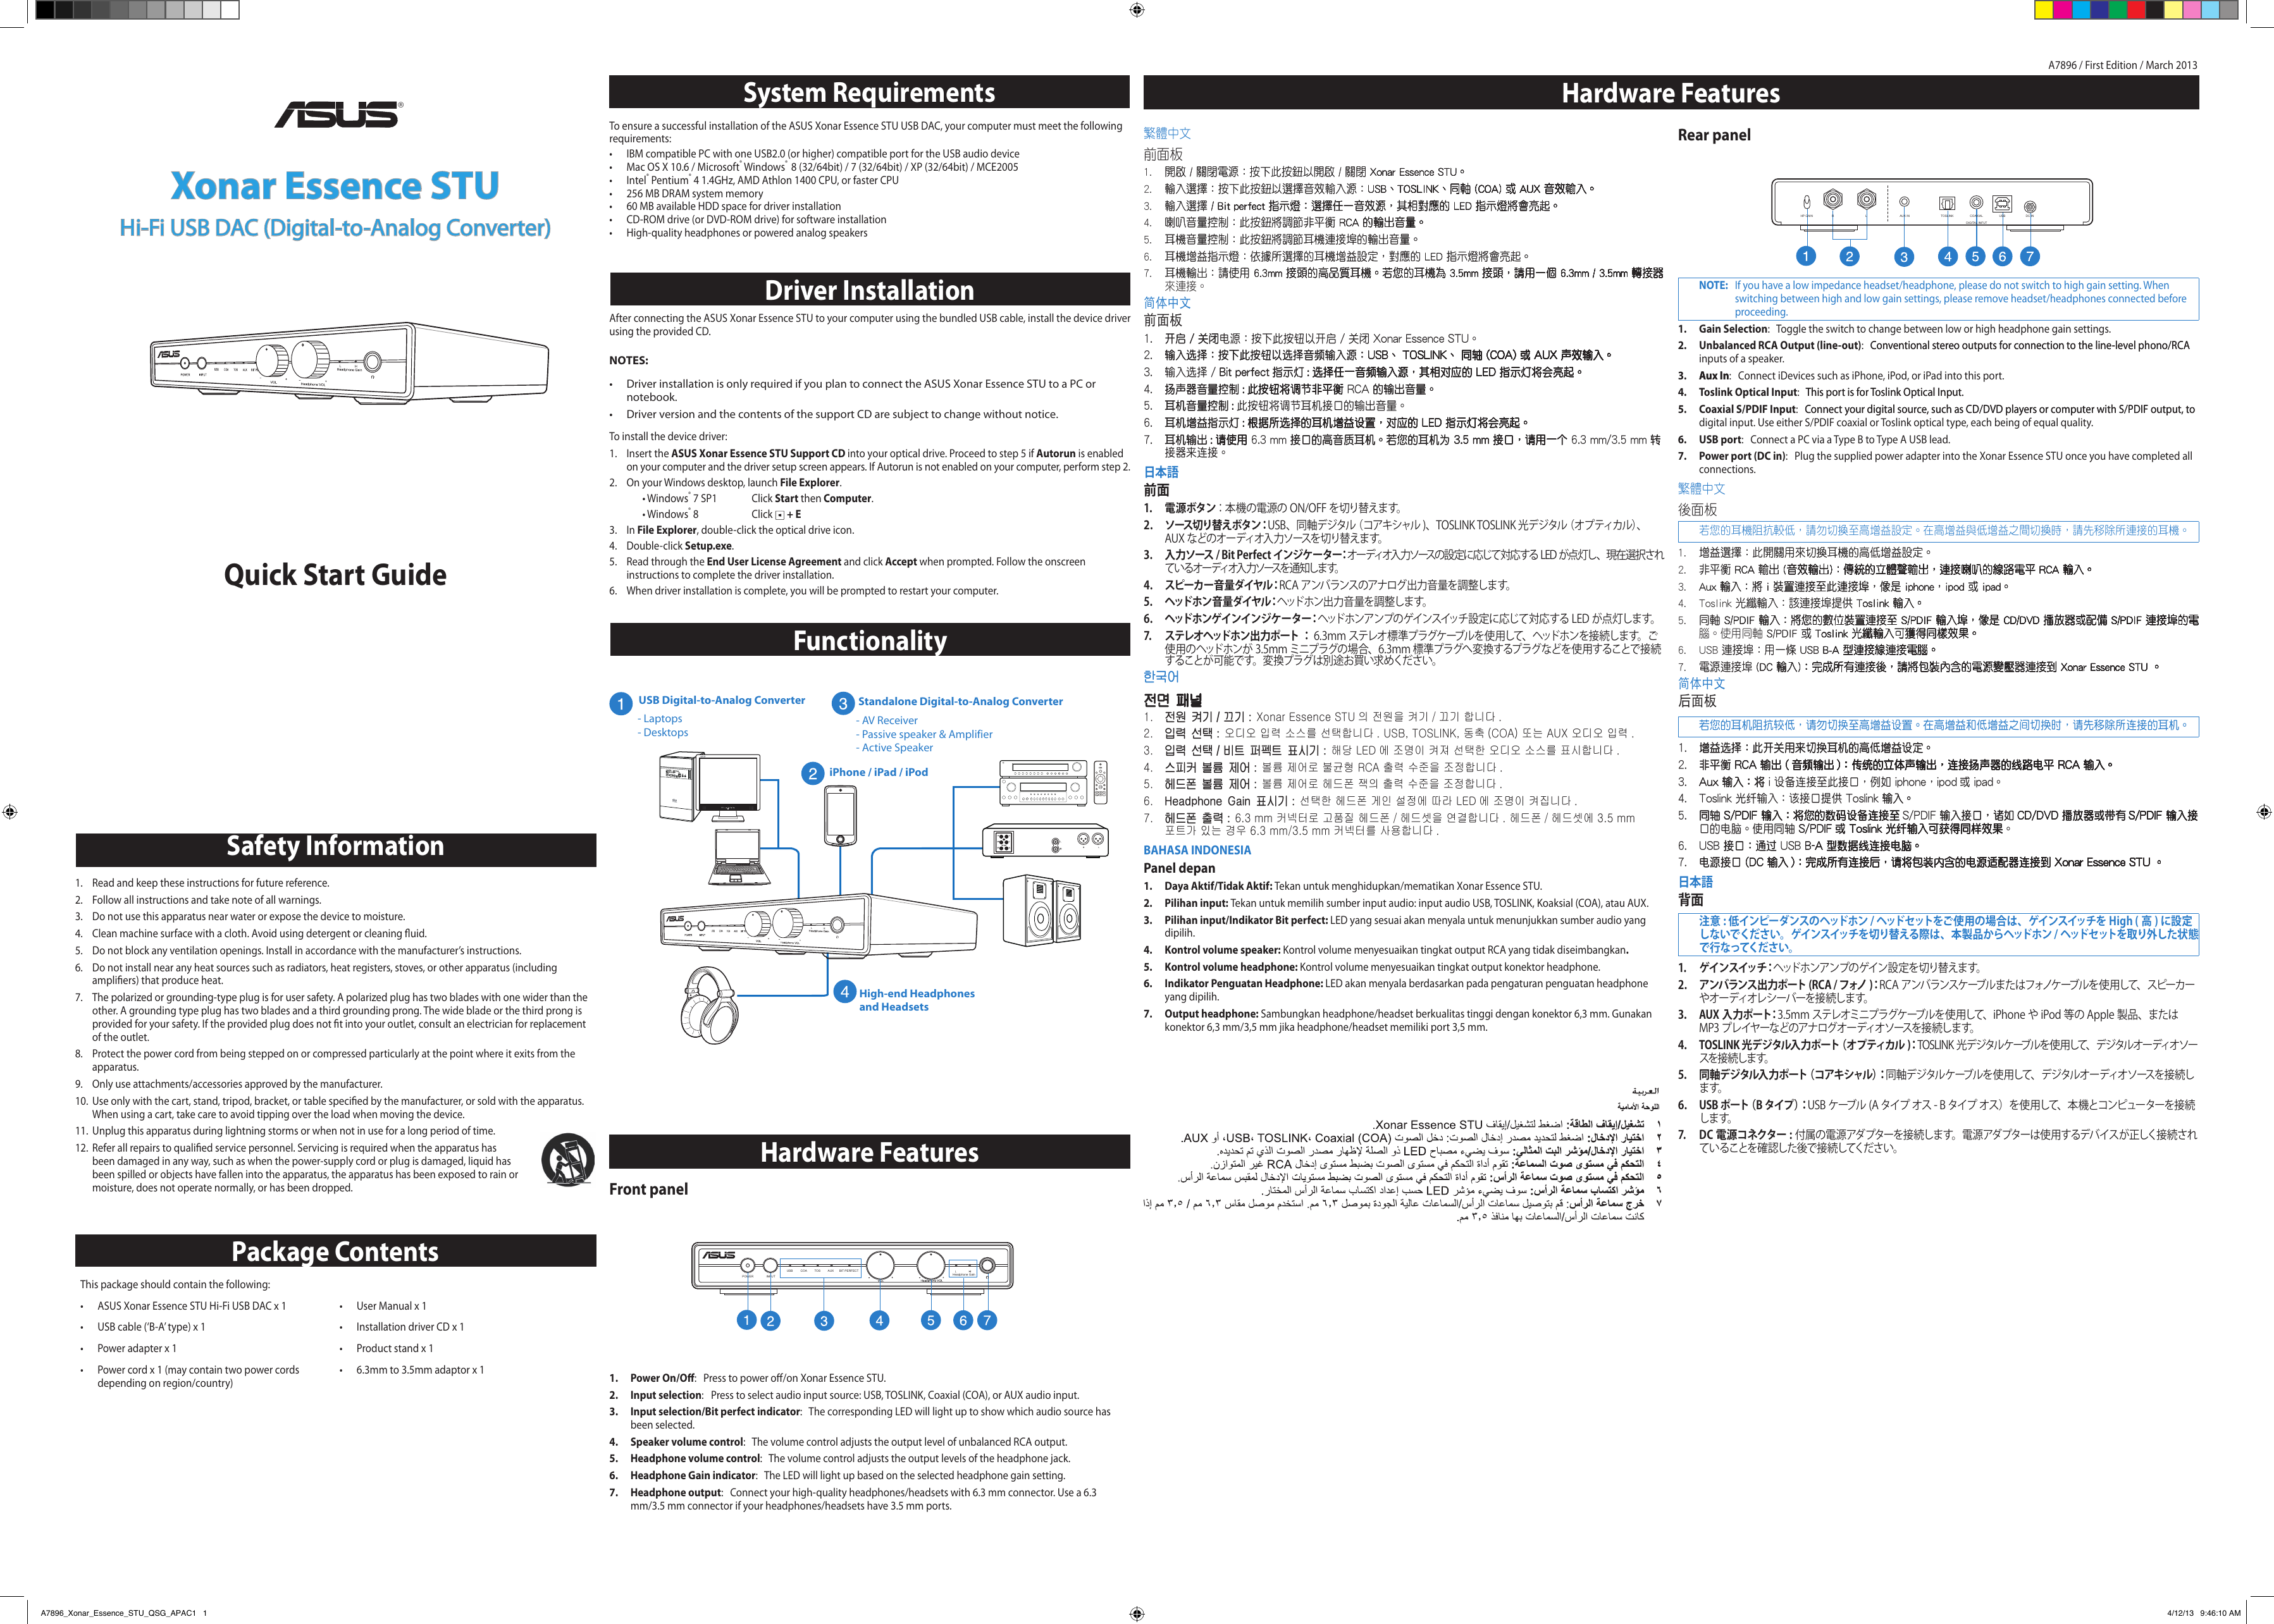 Asus Xonar Essence Stu A7896 Users Manual Usb Cable Wiring Diagram Page 1 Of 2